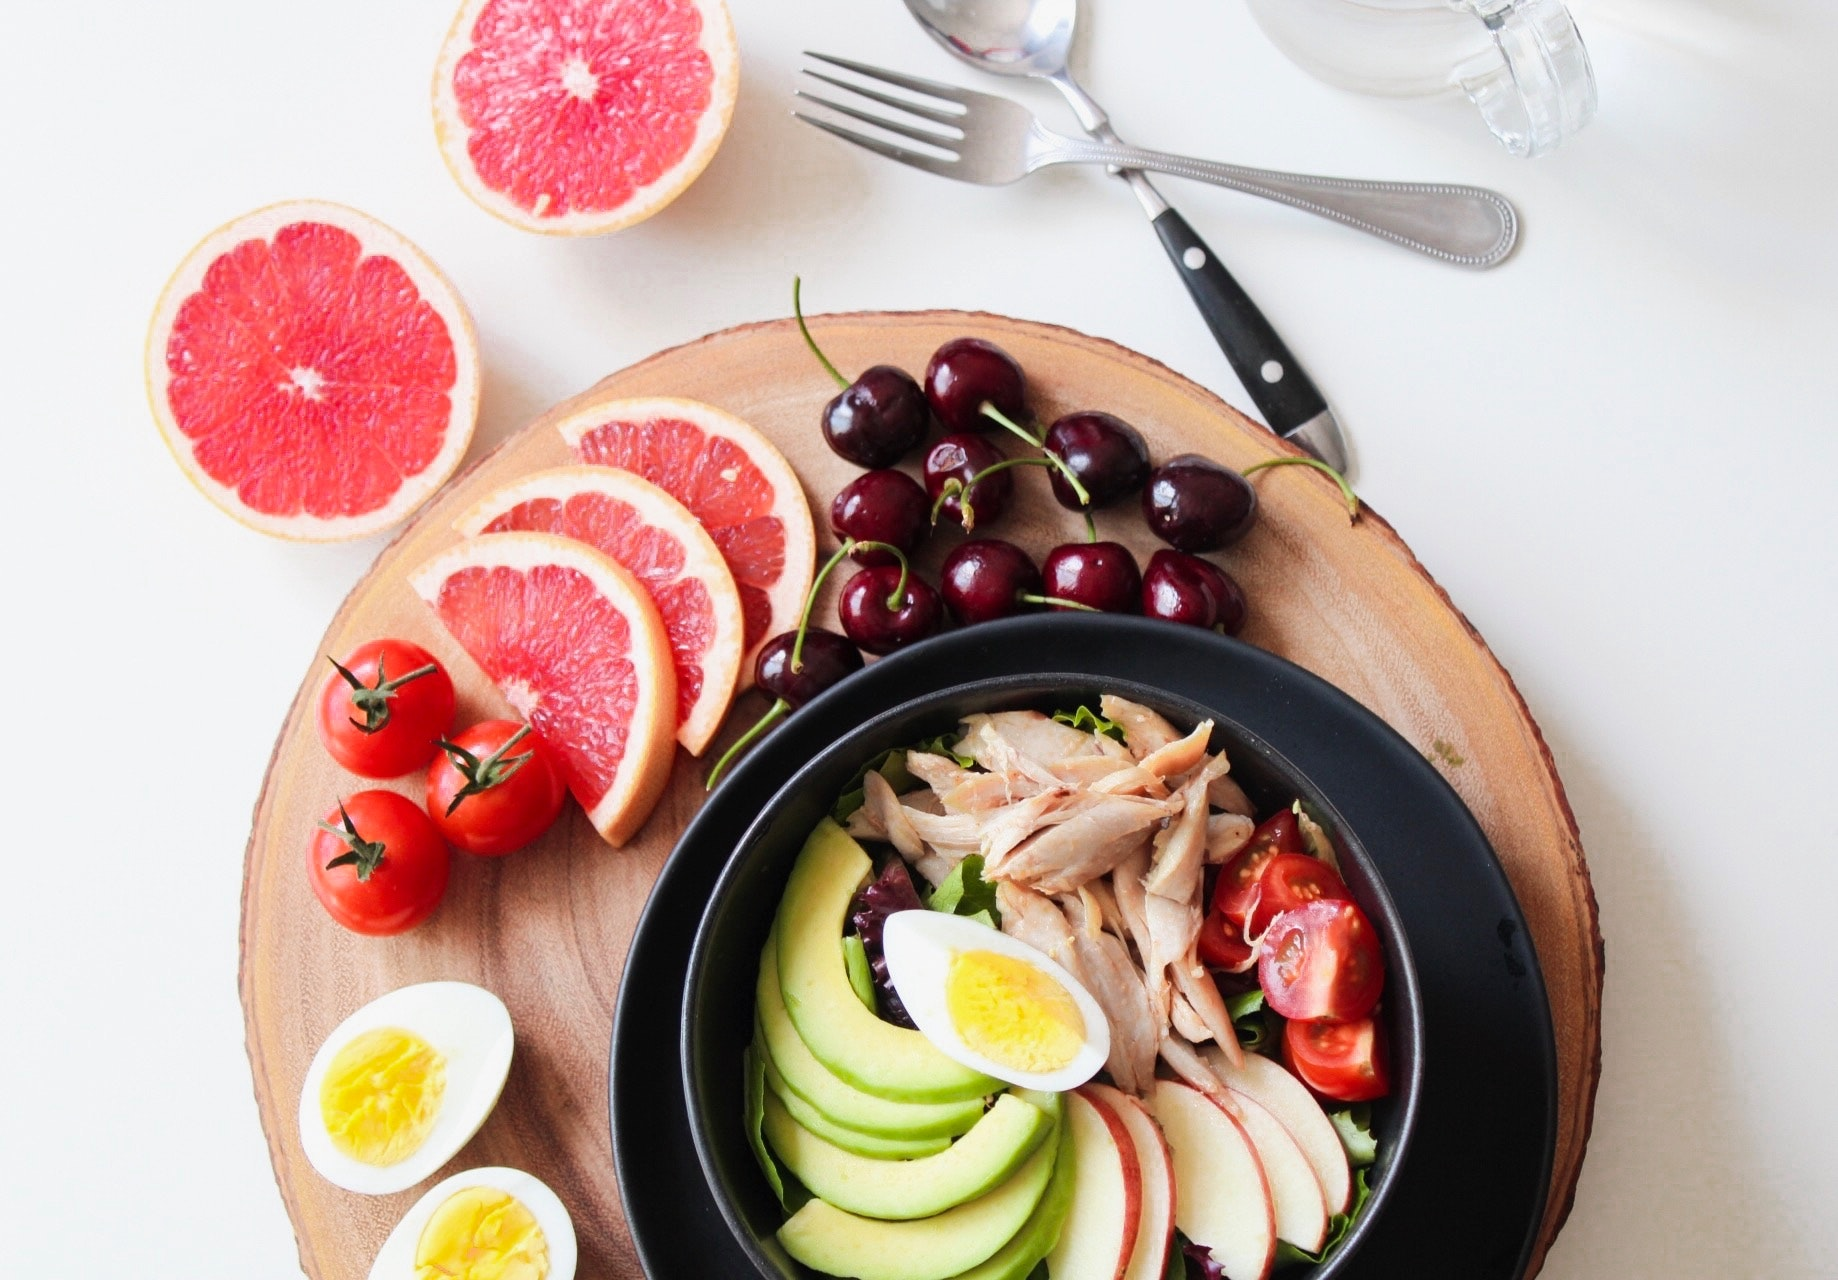 Keto diet: a guide to low carbs and healthy foods 1 - Daily Medicos